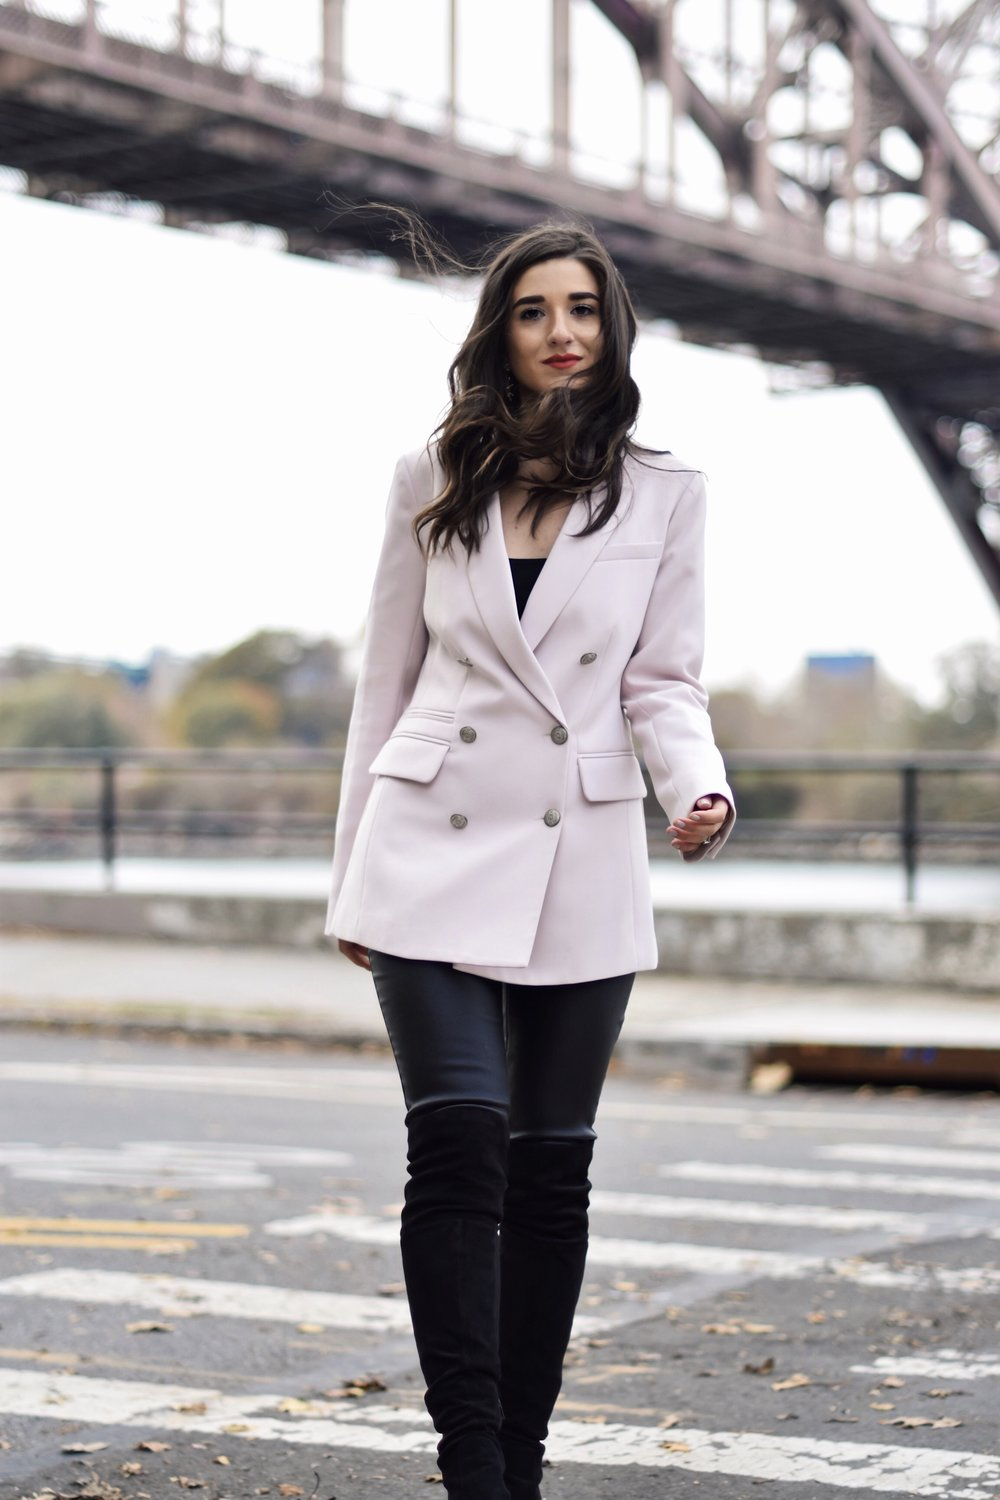 Why Some Bloggers Beg You To Like Their Photos Light Pink Blazer Leather Leggings Esther Santer Fashion Blog NYC Street Style Blogger Outfit OOTD Trendy Rachel Roy Black Over The Knee Boot Girl Women Astoria Photoshoot Fall Winter Shopping Sale Jacket.jpg